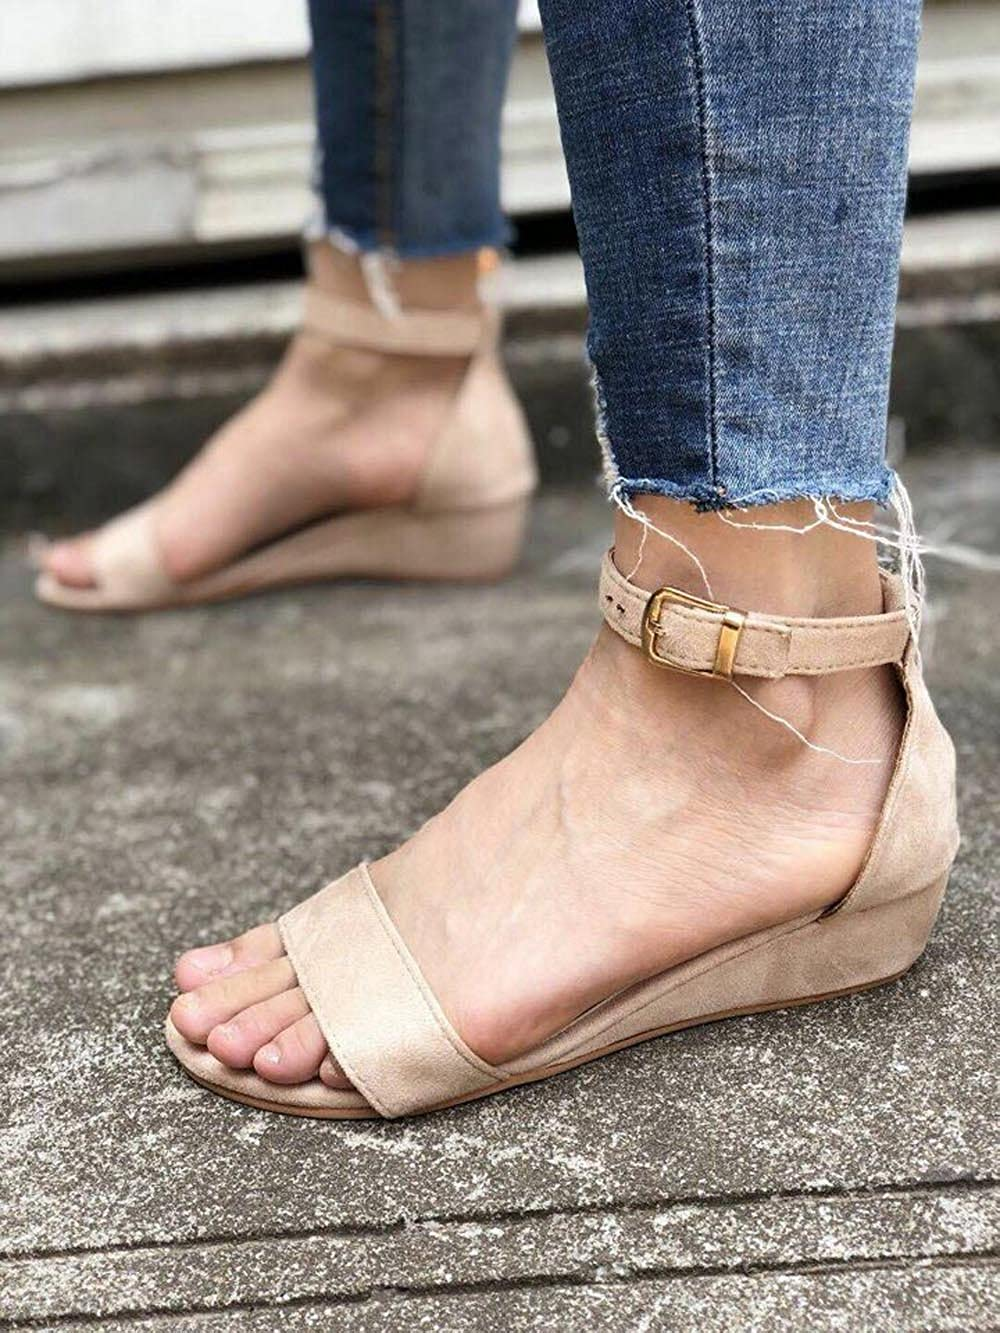 Ladies Ankle Strap Buckle Wedges Sandals Solid Color Peep Toe Light Sandals Gogoodgo Retro Roman Shoes for Women